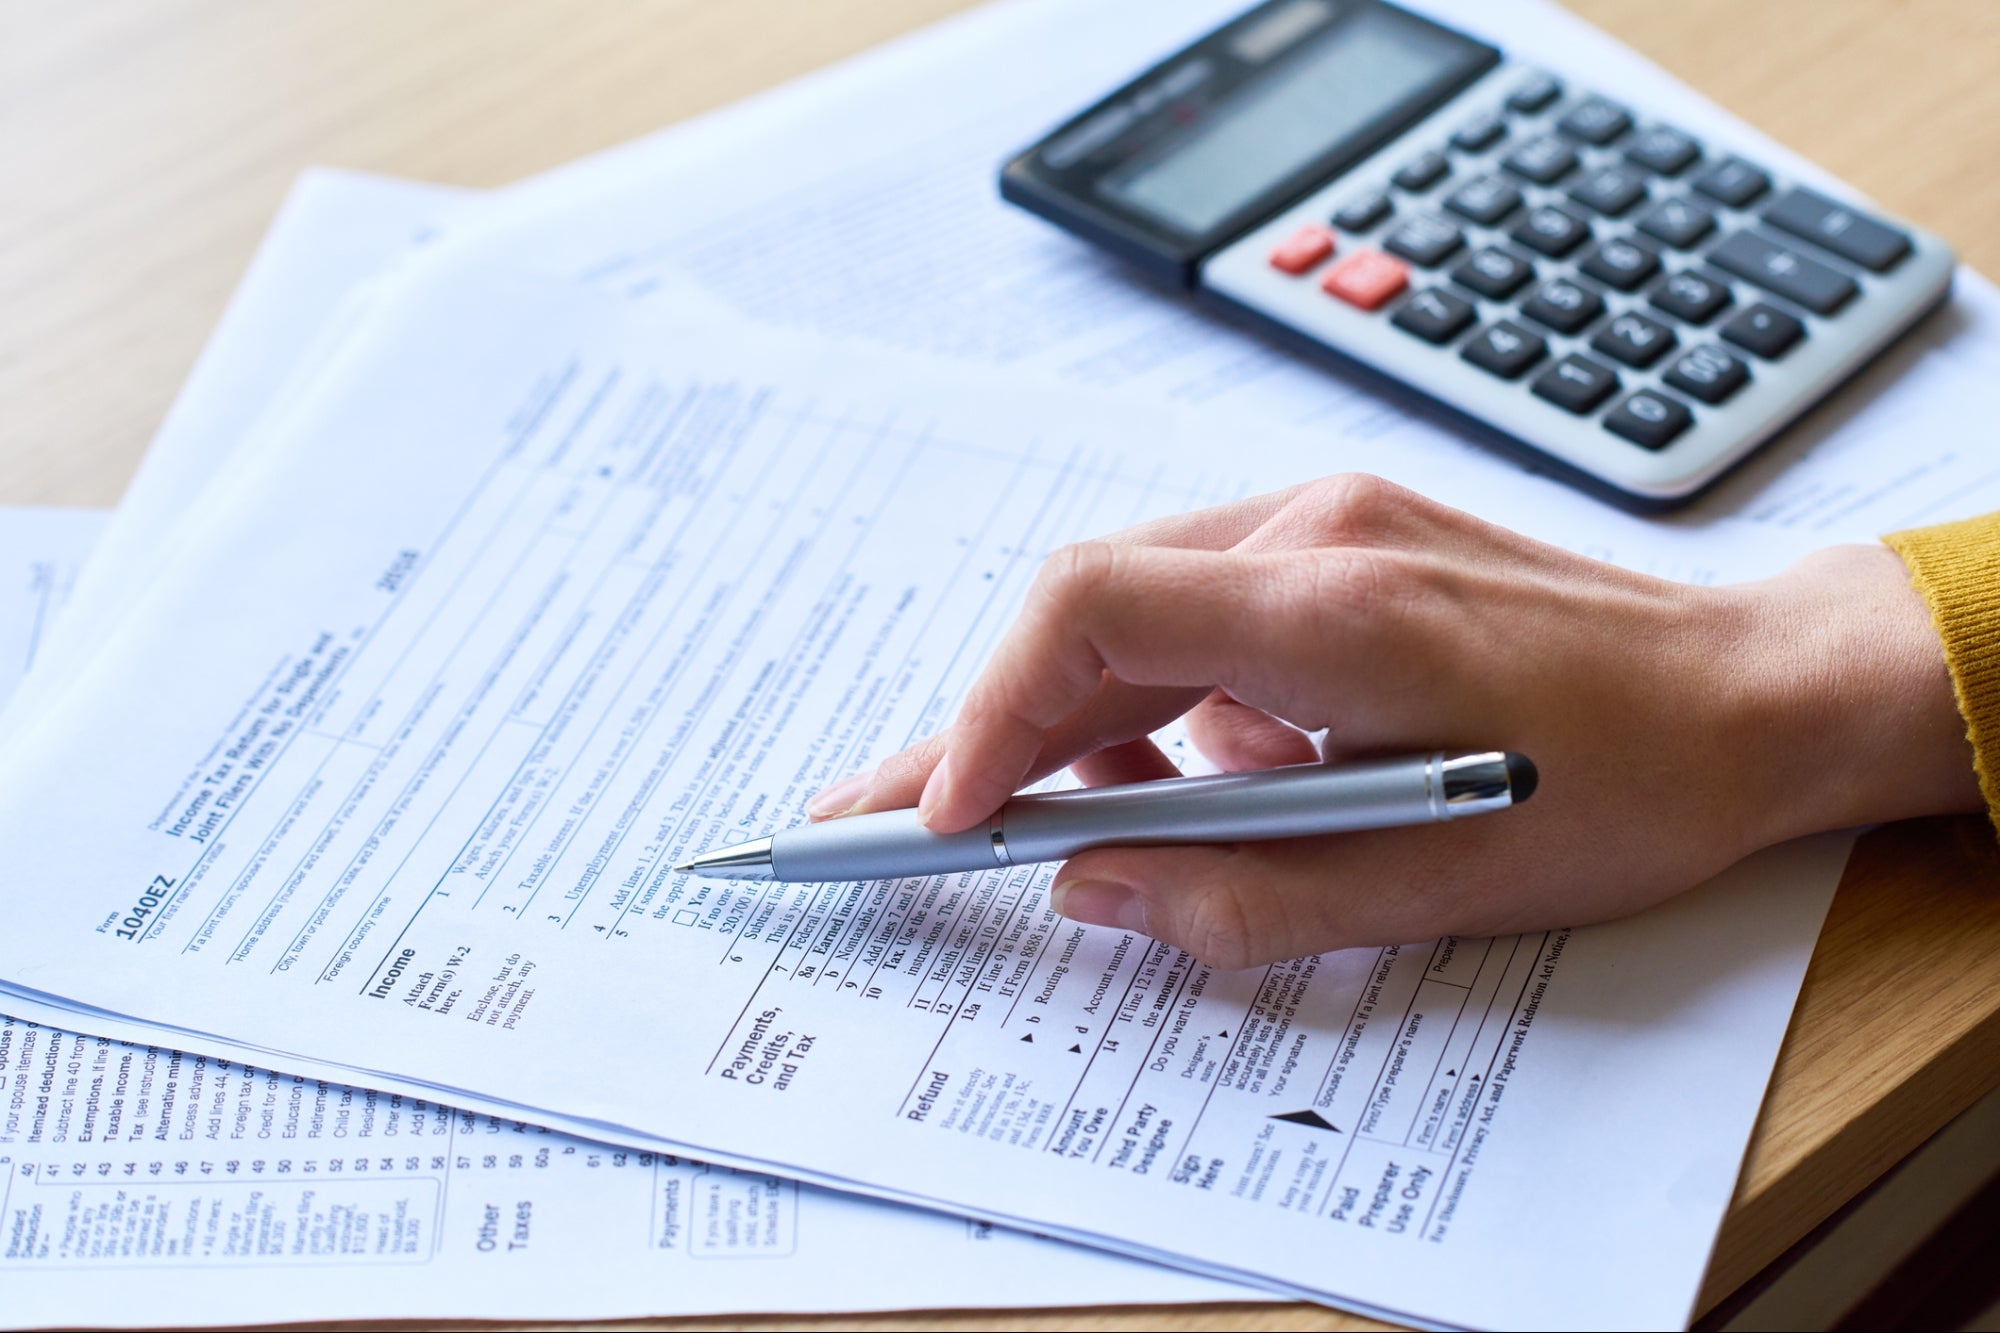 4 Questions to Ask Yourself During the 2020 Tax Season